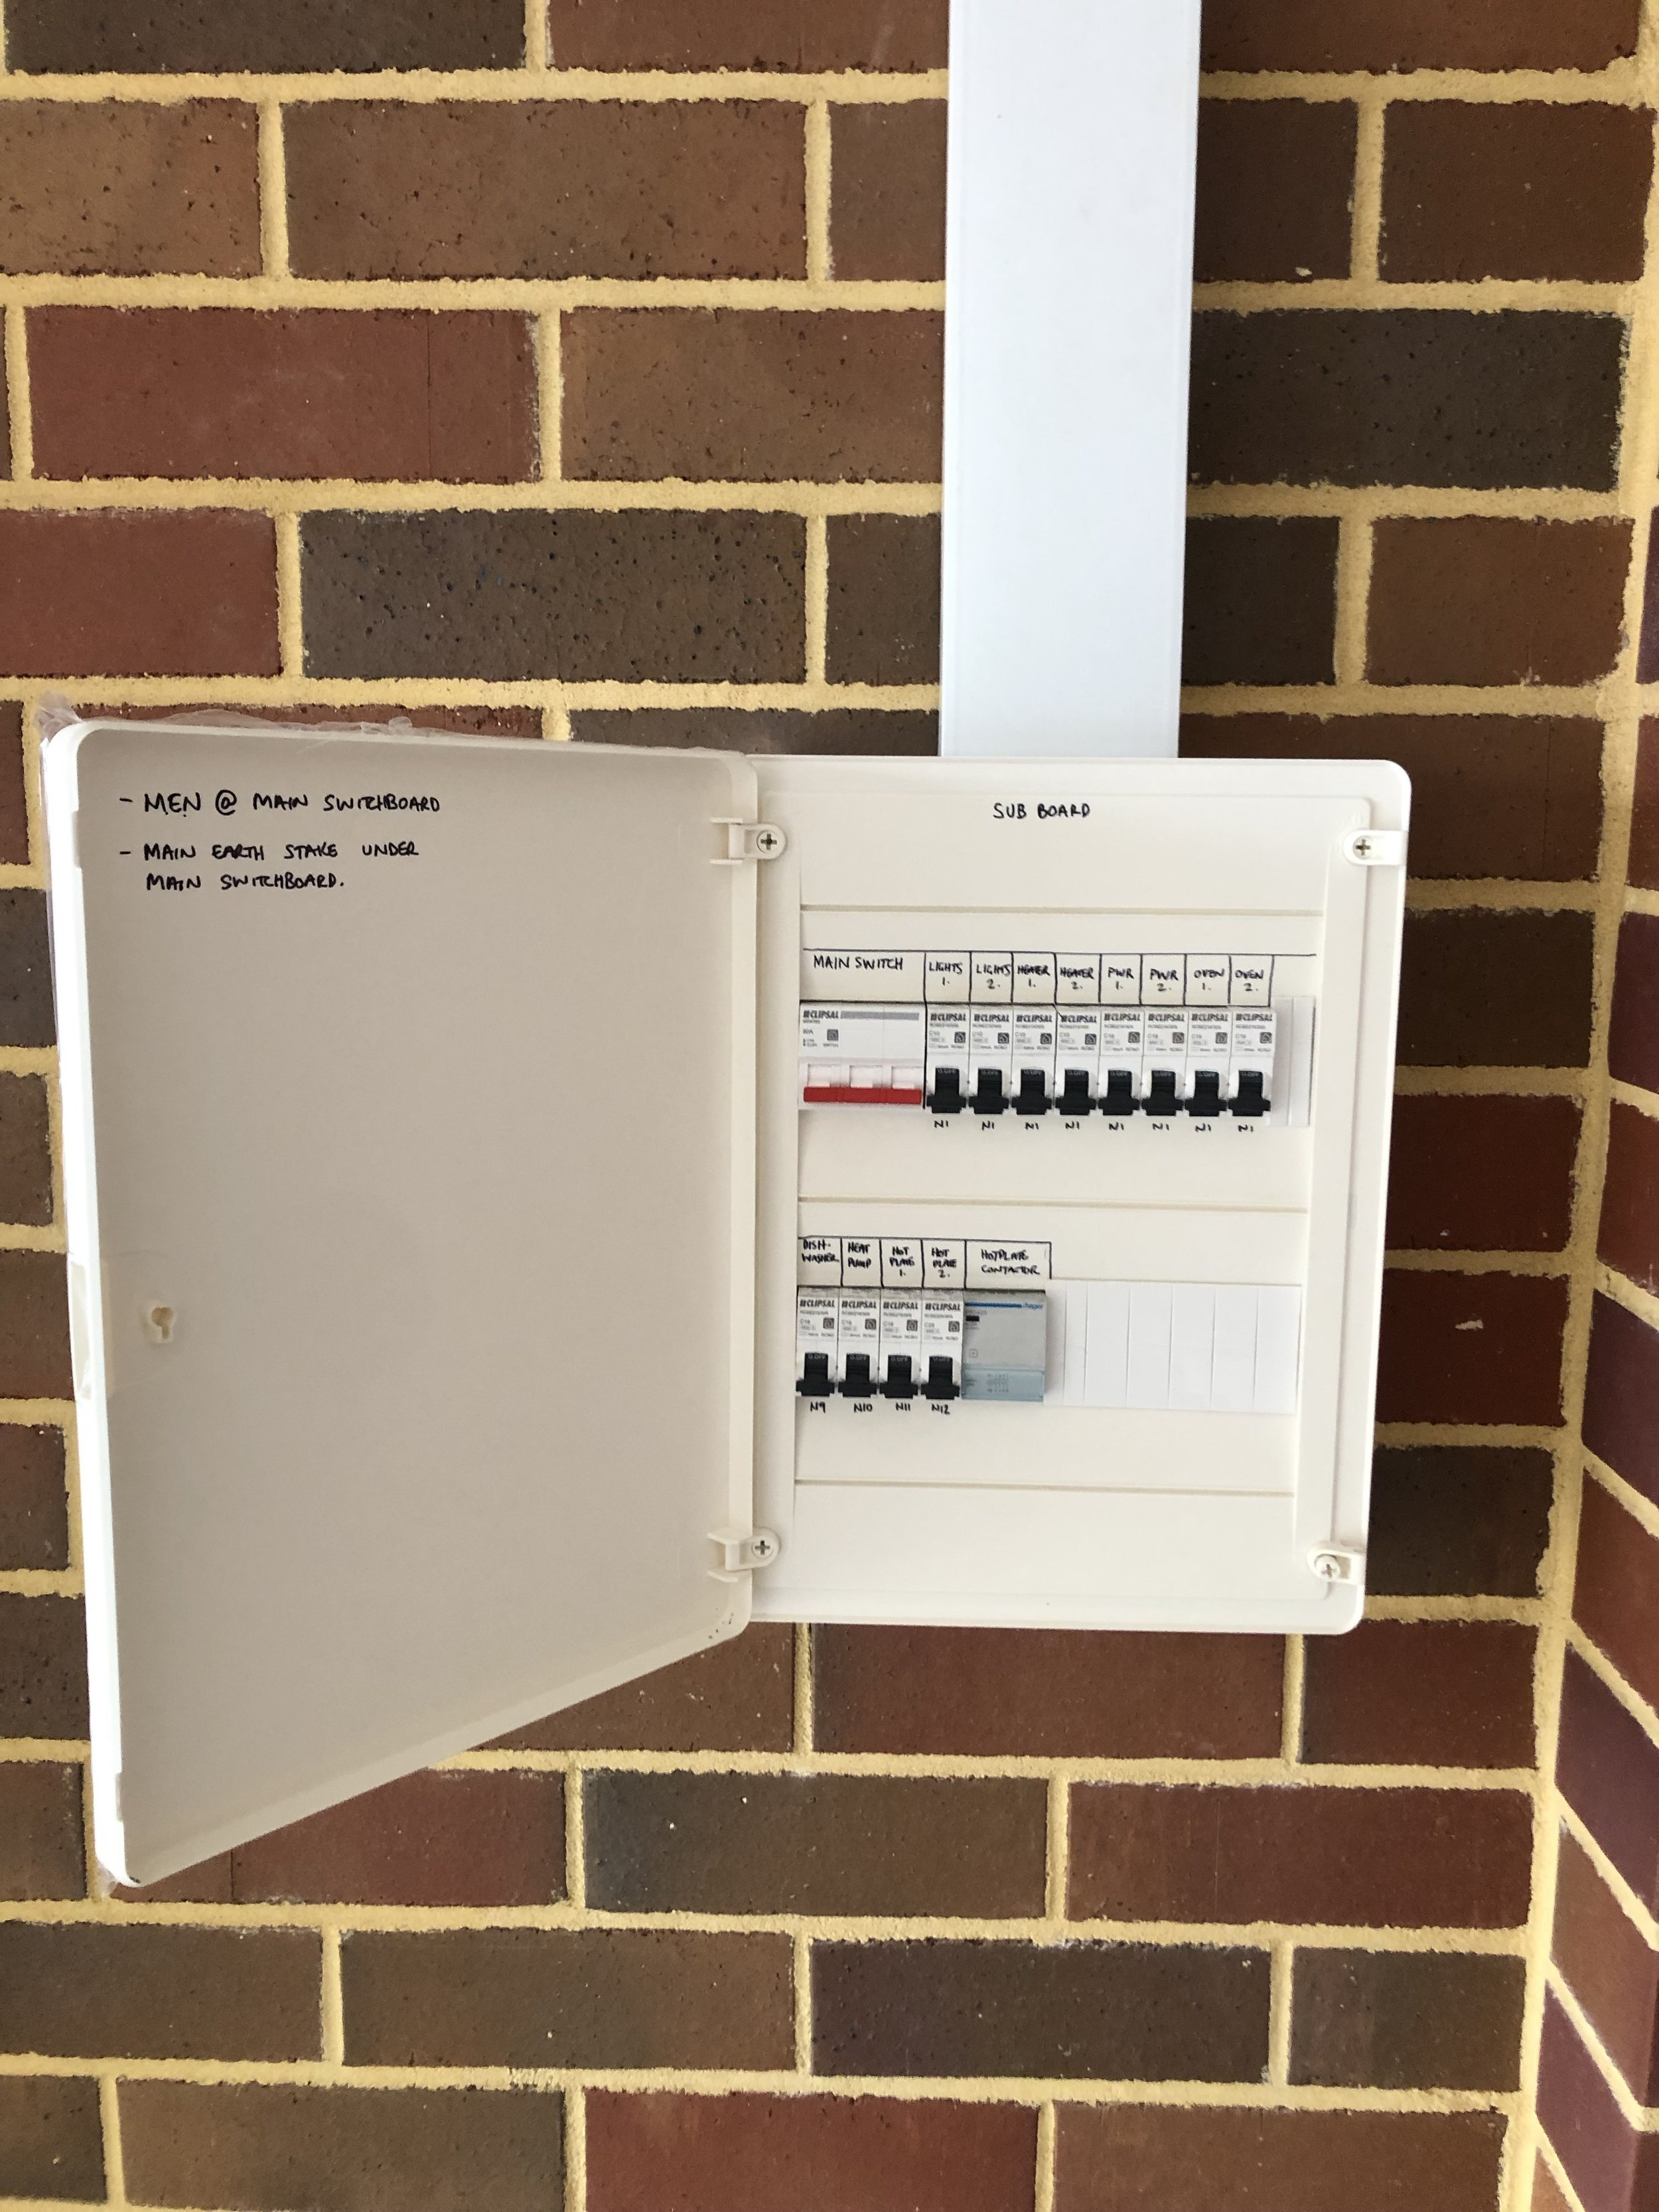 RCDs - RCDs monitor the flow of electricity from the main switchboard and prevent electrocution by cutting the electricity supply if an imbalance in the current is detected.If you are unsure if you have RCDs installed, send us a photo of your switchboard for free advice!